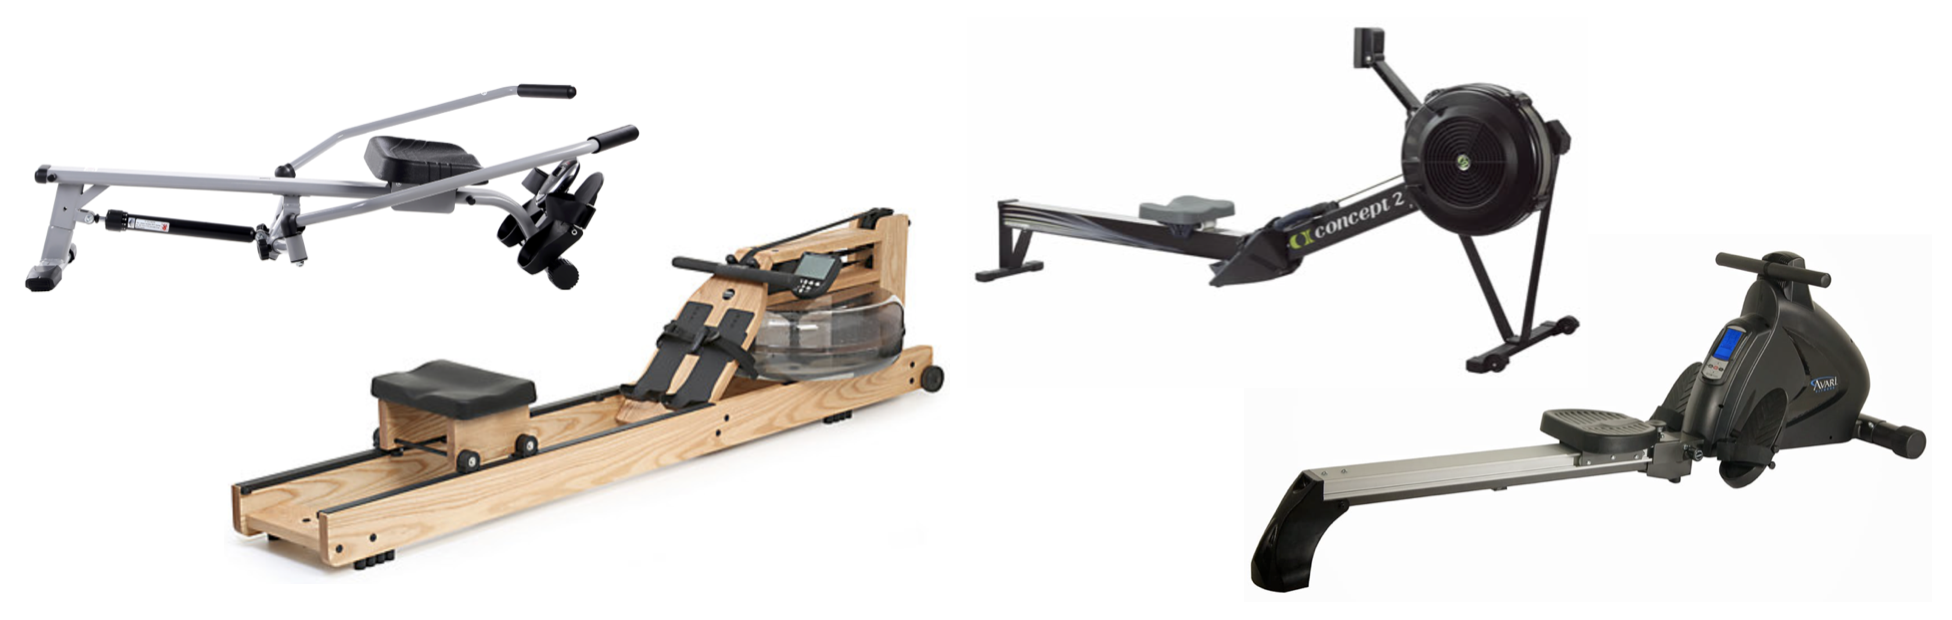 High Weight Capacity Rowing Machine Models All Resistance Categories